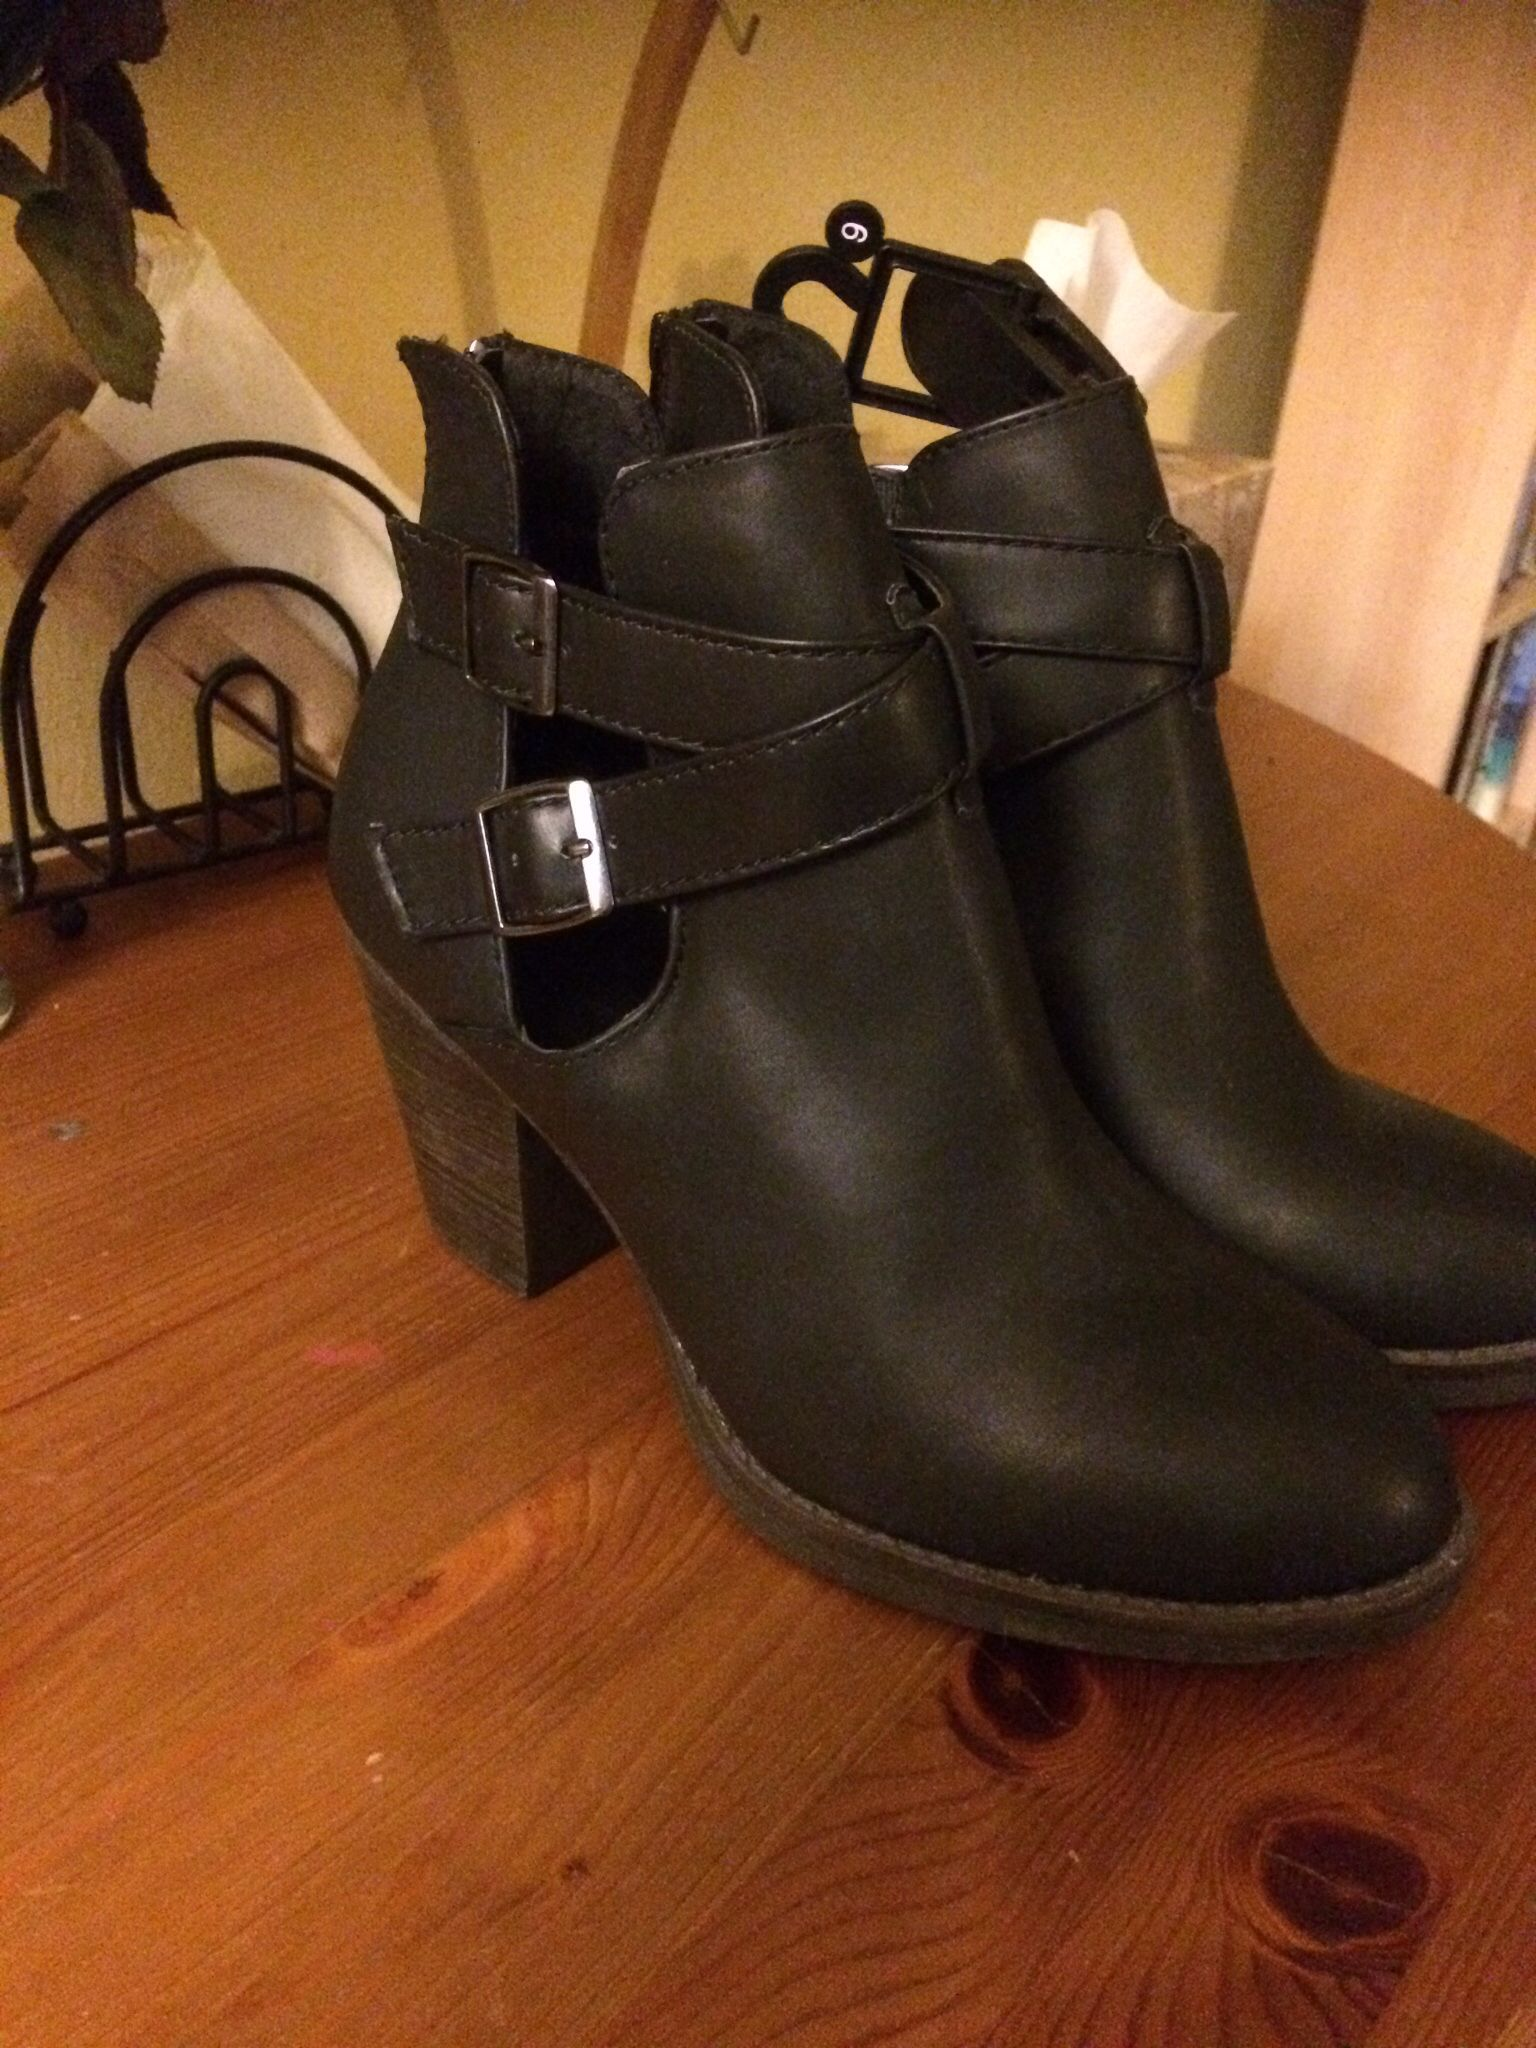 Leather ankle boots, Boots, Character shoes